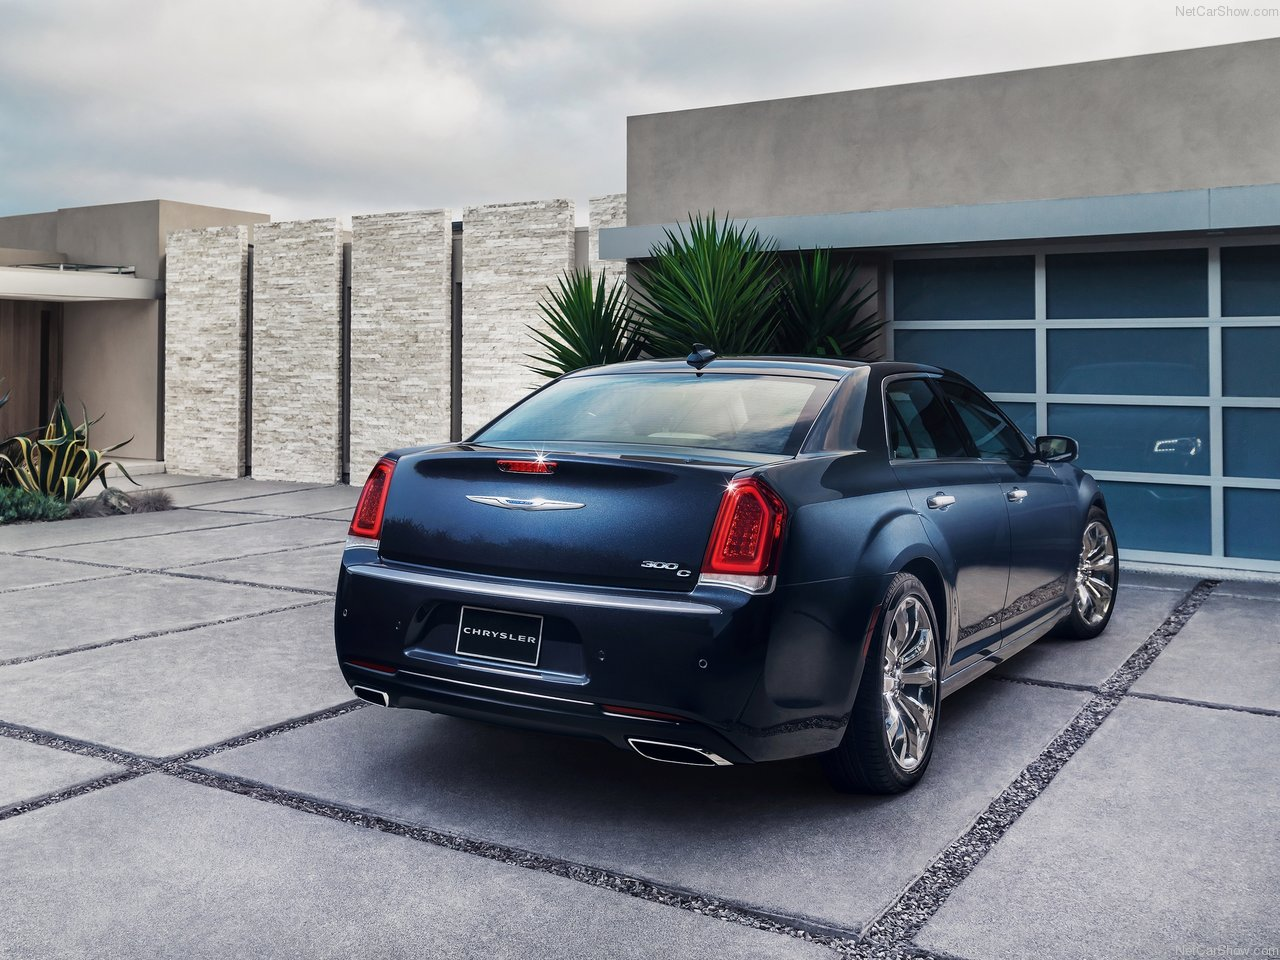 Chrysler 300 photo 141586